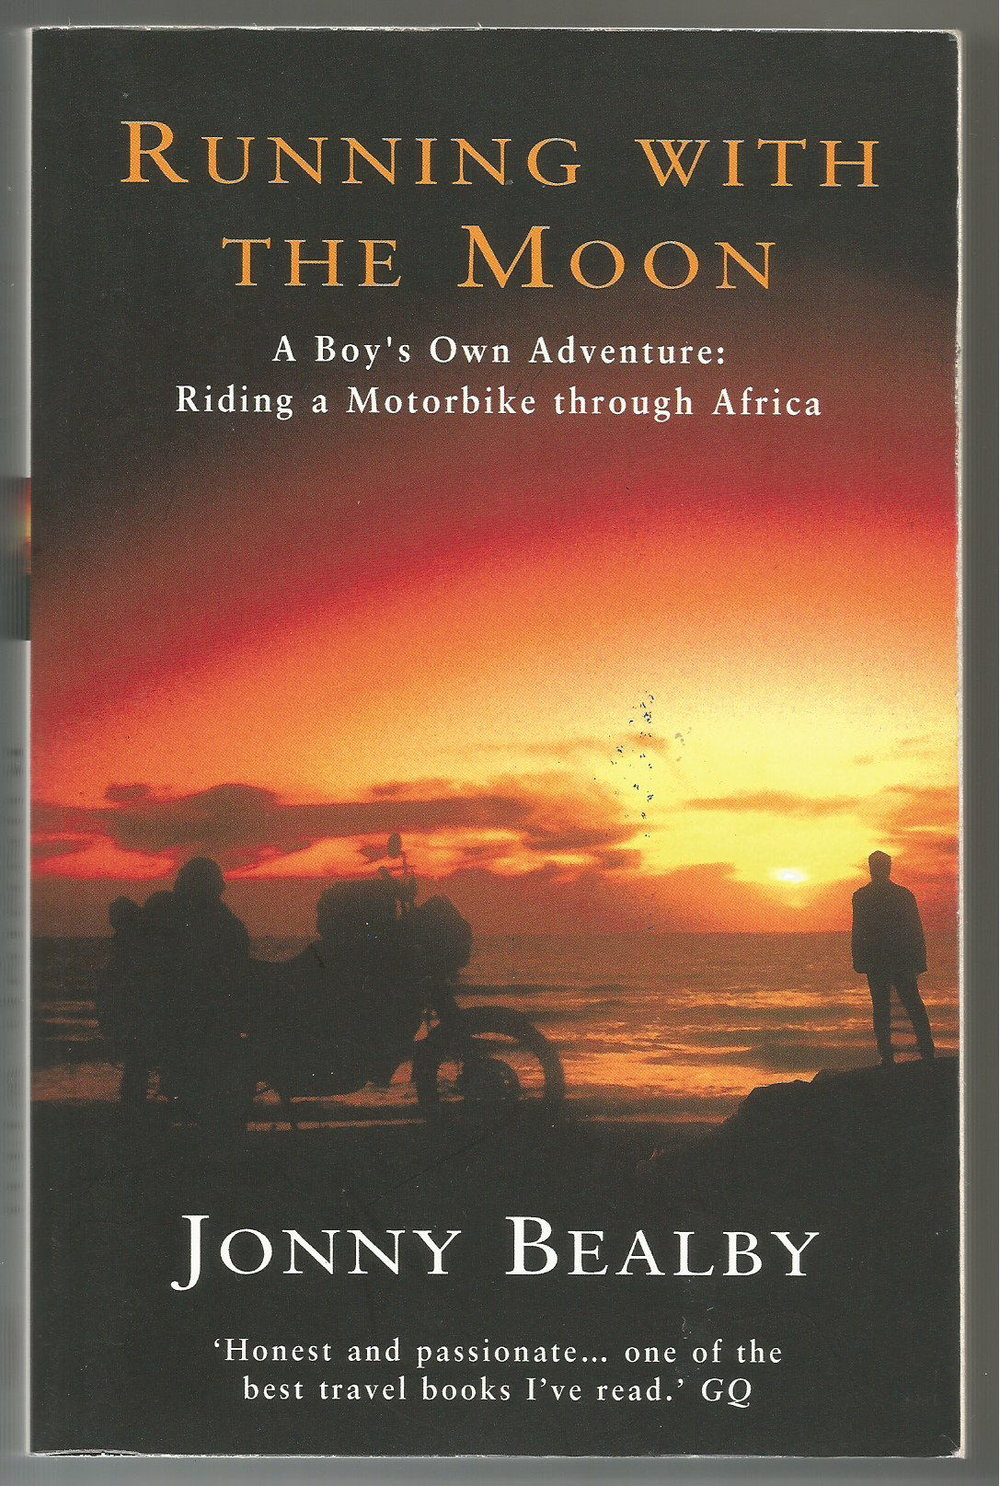 A journey about life and cultures - Jonny Bealby's Running with the Moon